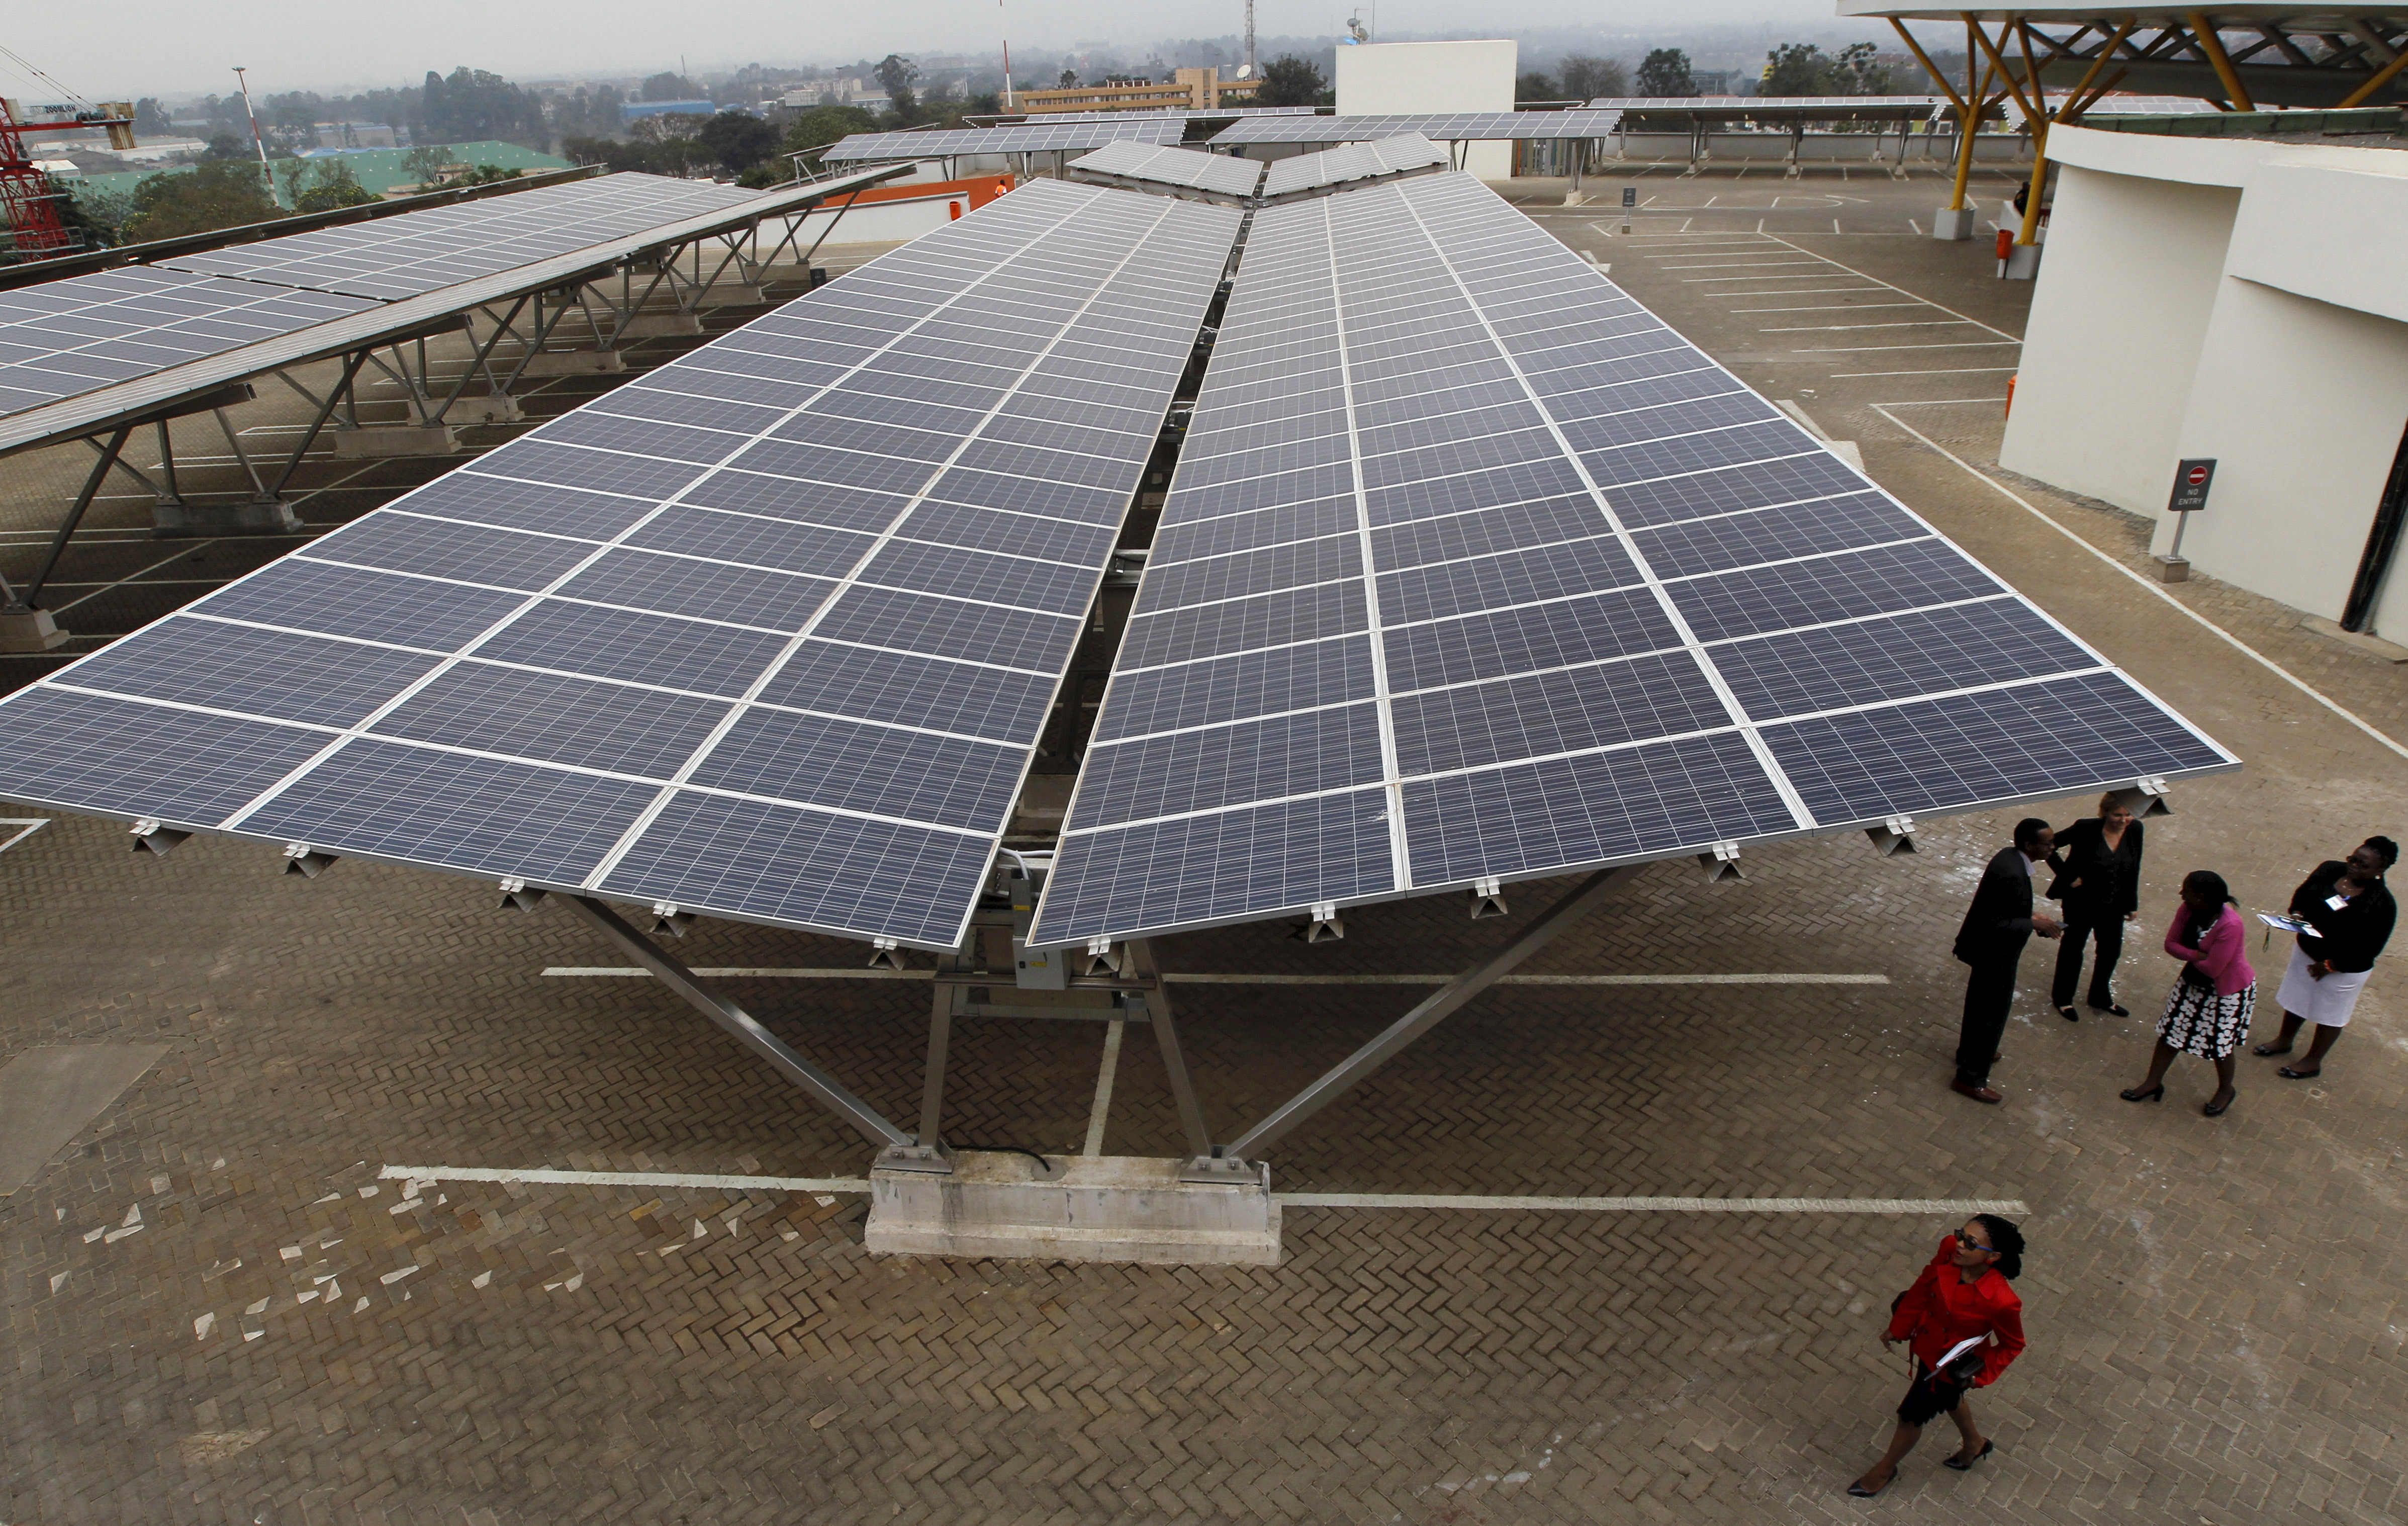 Delegates are pictured during the launch event of a solar carport at the Garden City shopping mall in Kenya's capital Nairobi, September 15, 2015. The Africa's largest solar carport with 3,300 solar panels will generate 1256 MWh annually and cut carbon emission by around 745 tonnes per year, according to Solarcentury and Solar Africa.  REUTERS/Thomas Mukoya - GF10000206535